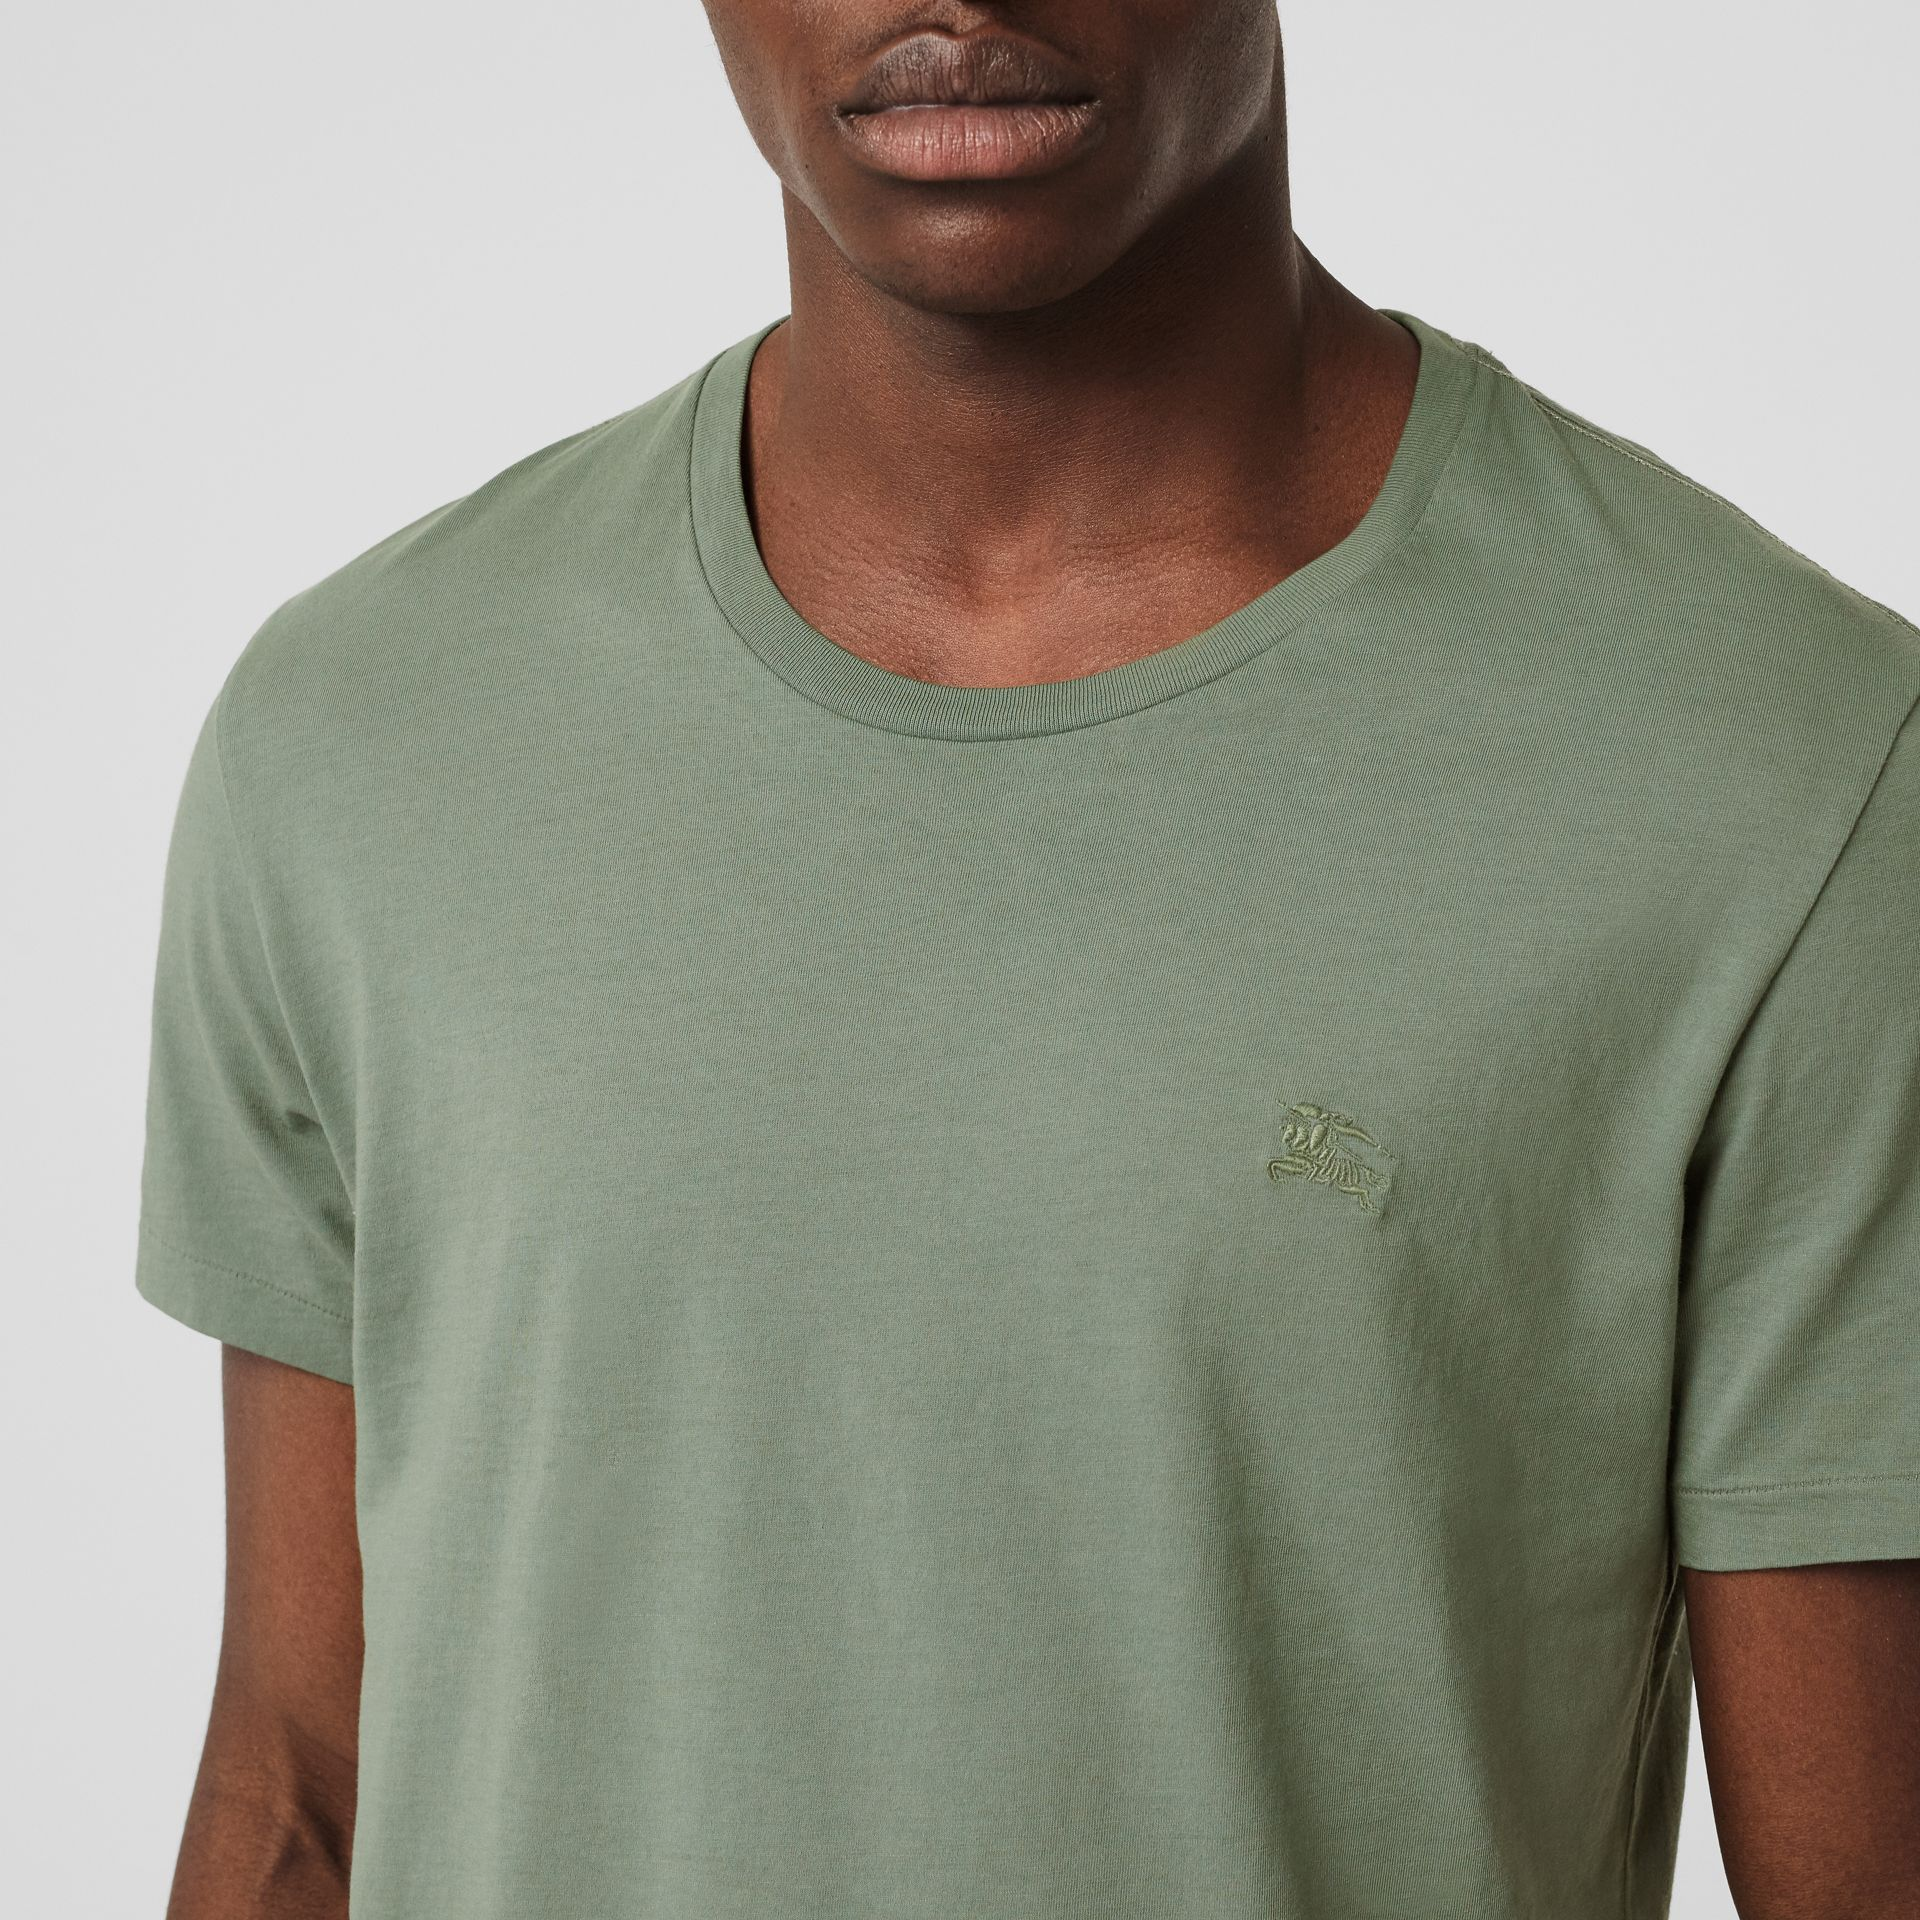 Cotton T-shirt in Clay Green - Men | Burberry - gallery image 1